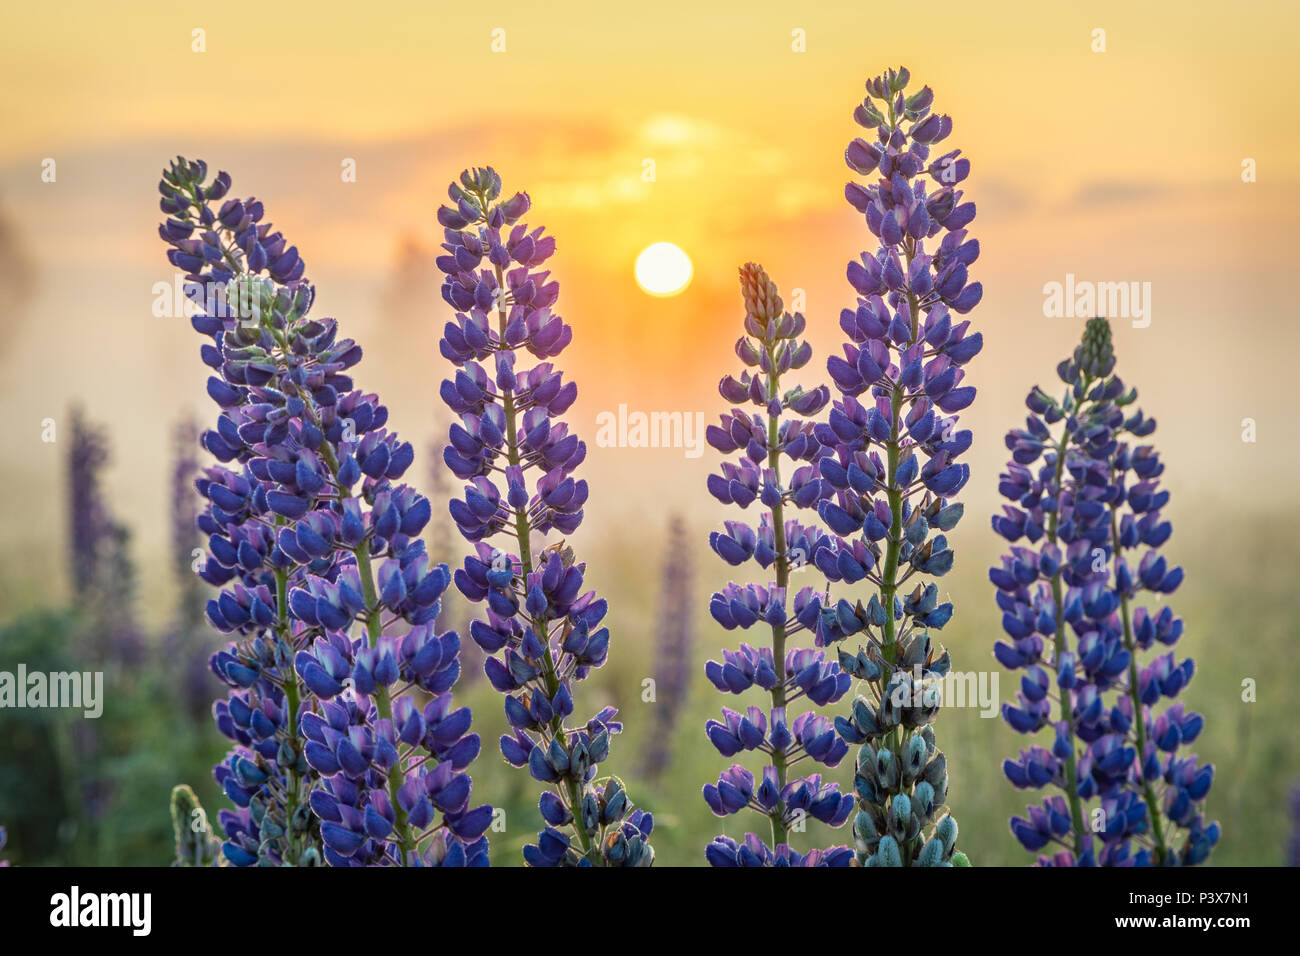 Lupin flowers with rising sun on background - Stock Image